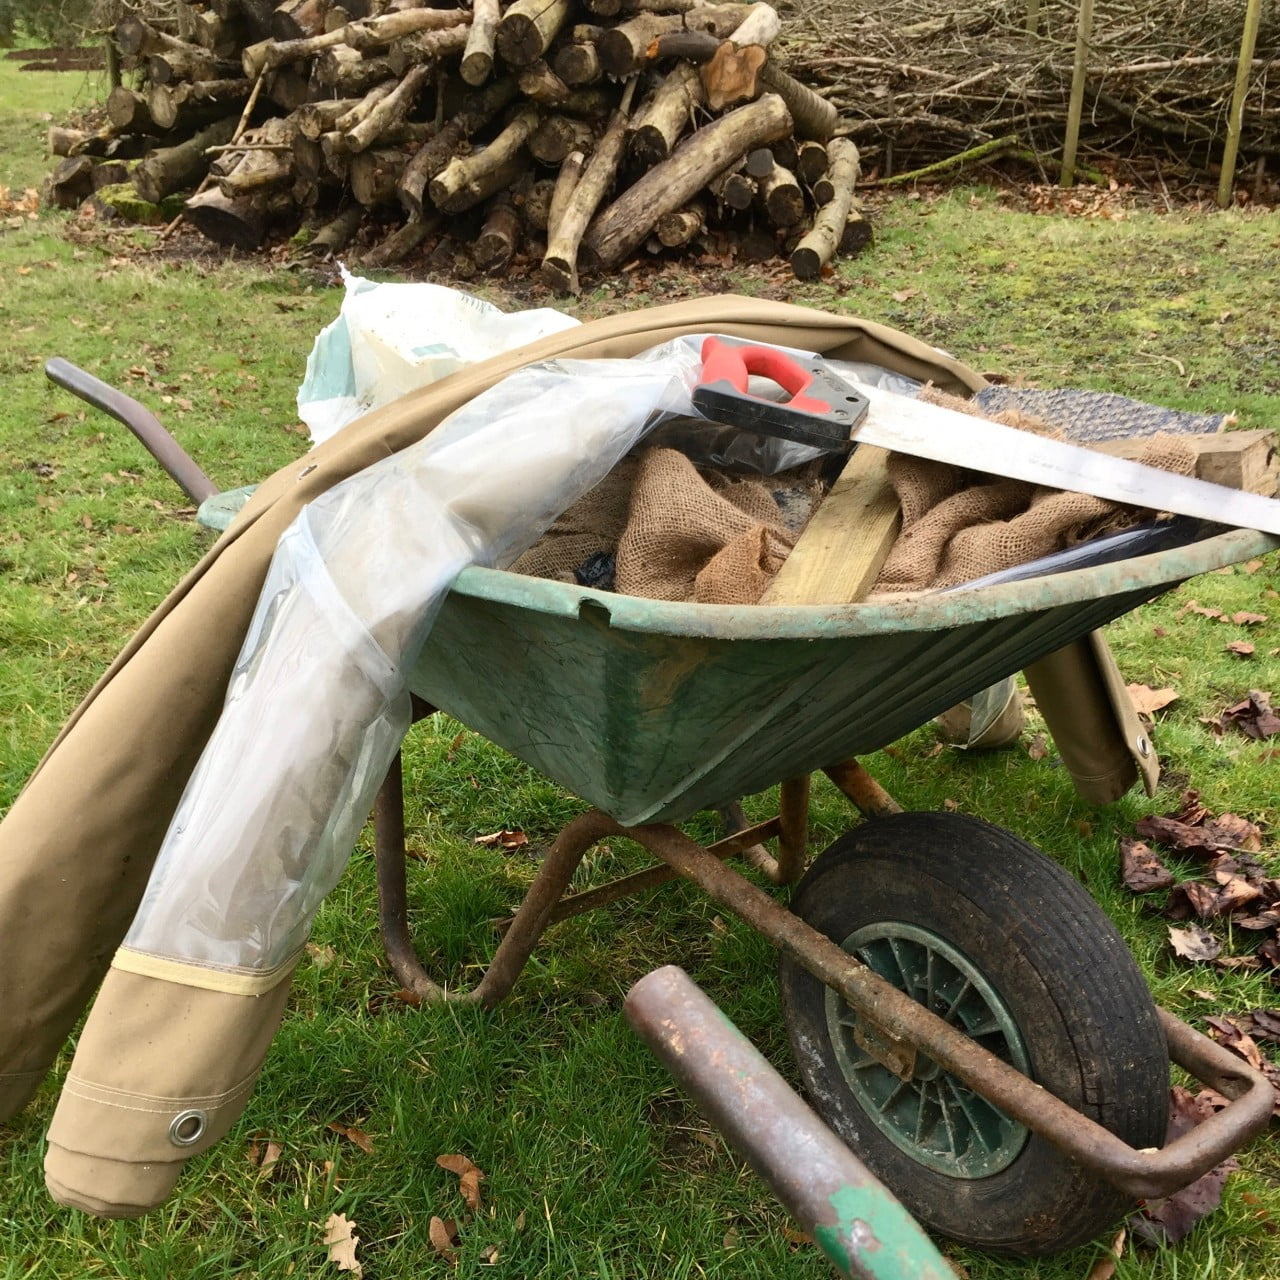 A new garden design being built in Buckinghamshire. This wheelbarrow will e recycling for a woodland garden & homes for bugs